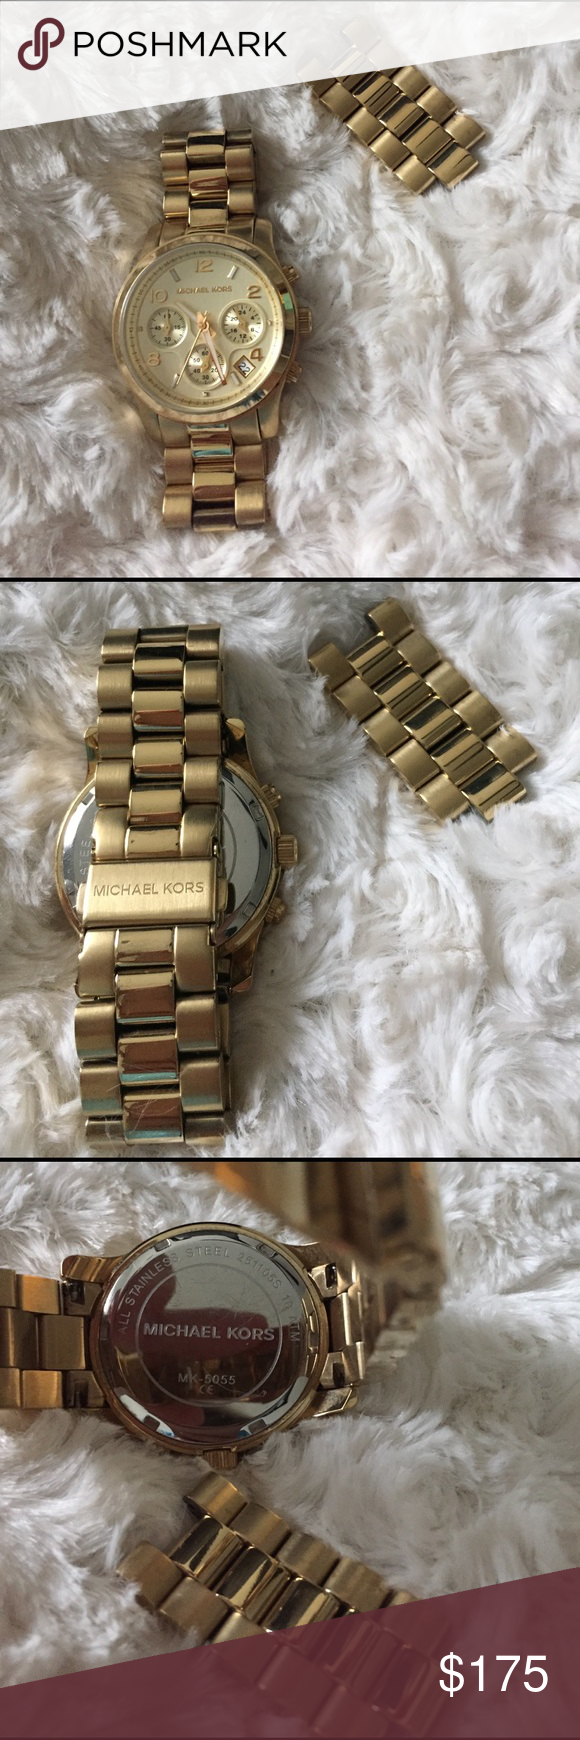 Authentic Michael Kors all stainless steel watch This is a woman's Michael Kors watch in gold stainless steel. Comes with links that were taken out. Very minimal signs of use (most underneath). Needs a new battery. KORS Michael Kors Accessories Watches